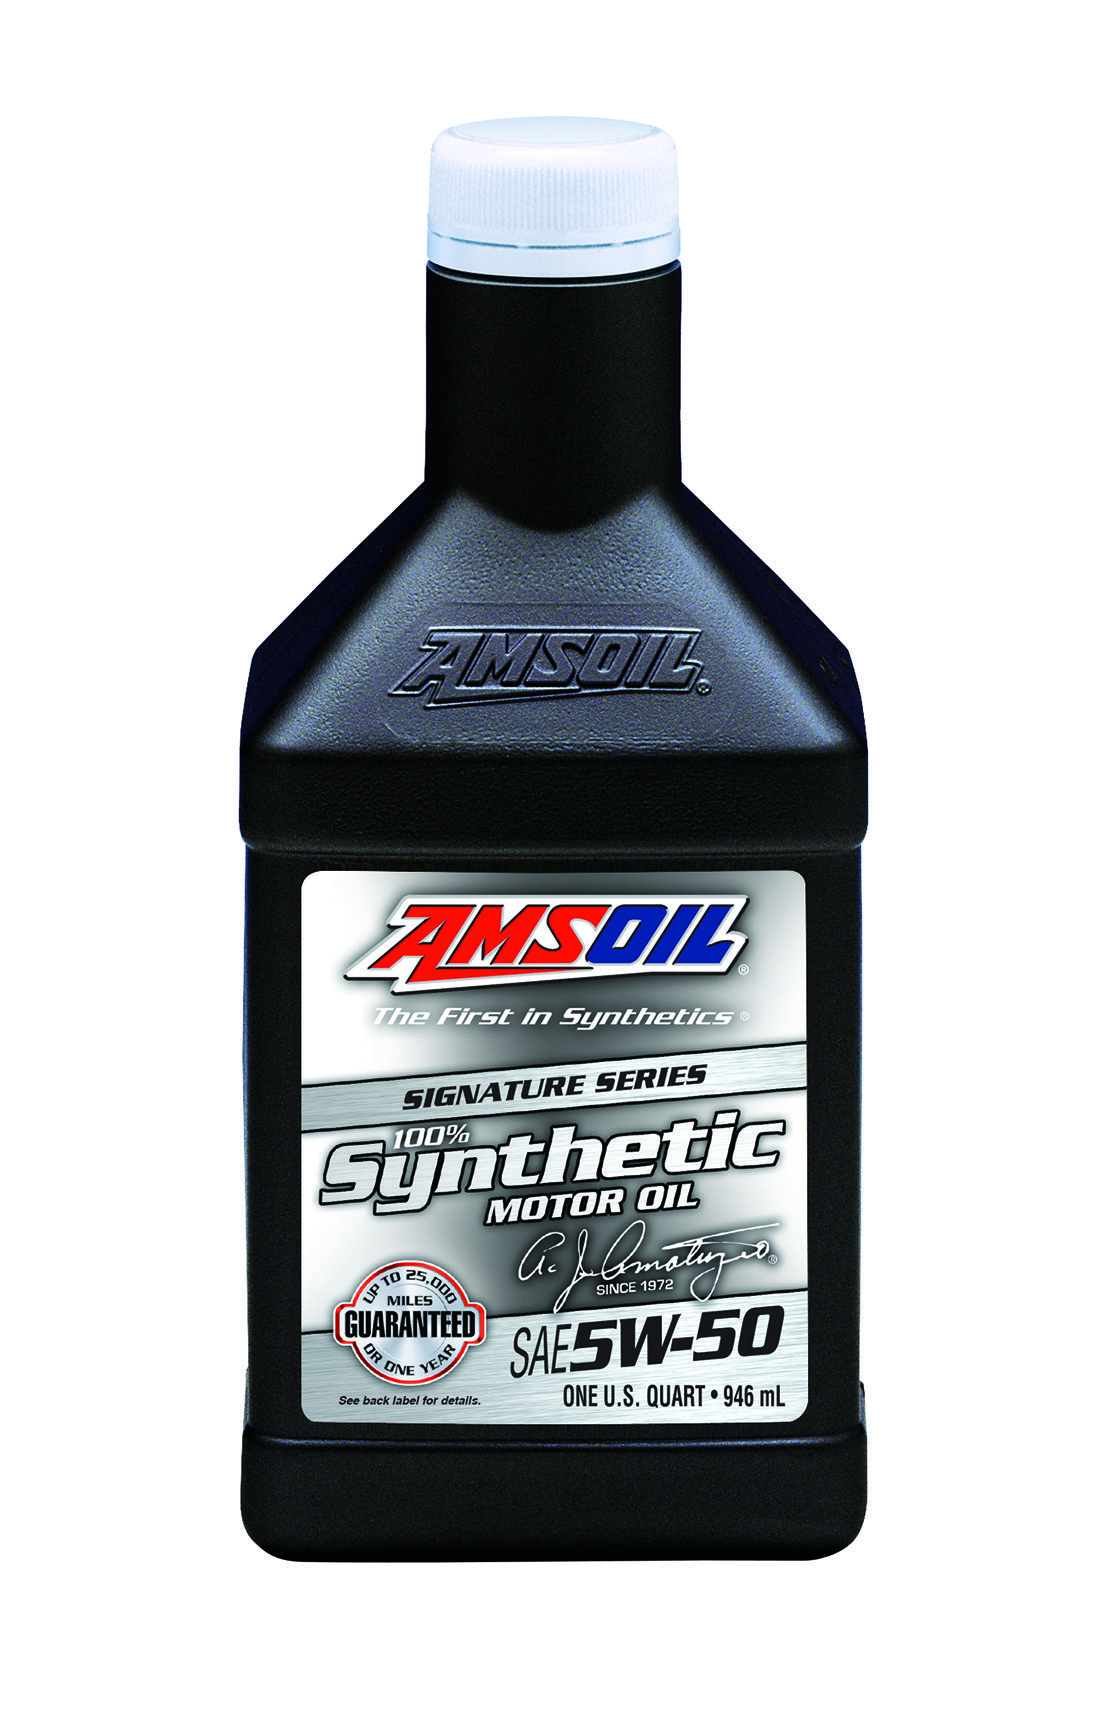 Amsoil SAE 5W-50 Signature Series 100% Synthetic Motor Oil